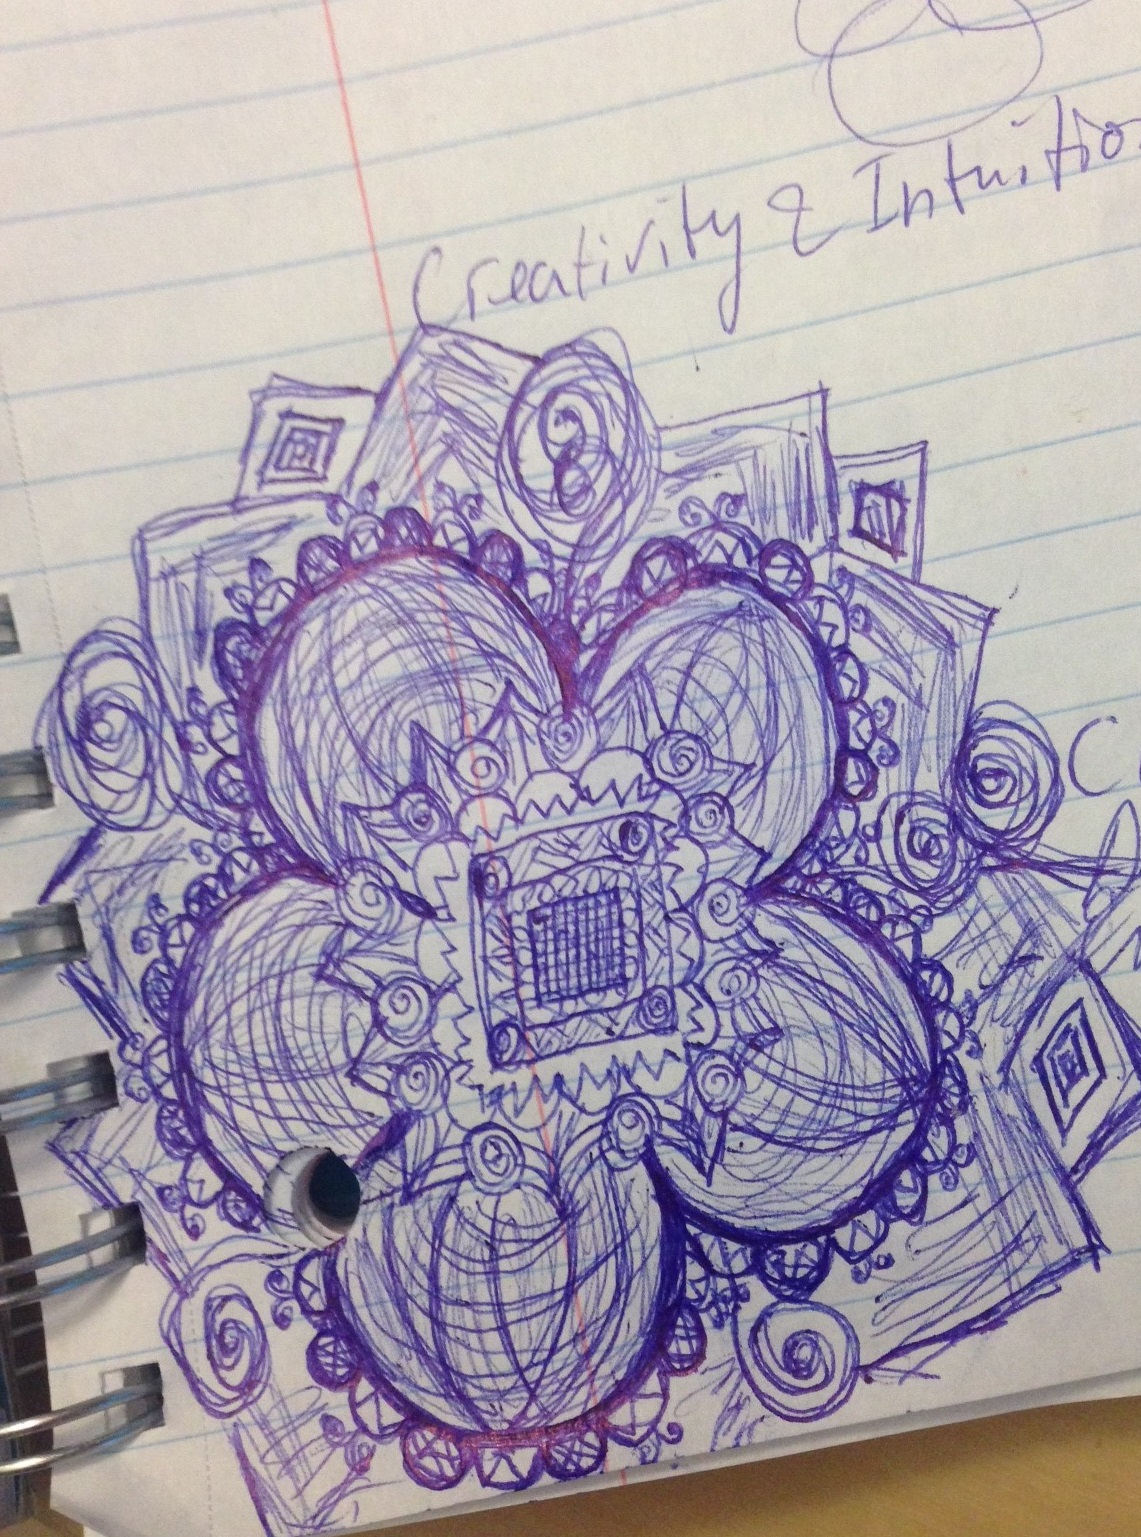 Doodle: attention, creativity, perspective